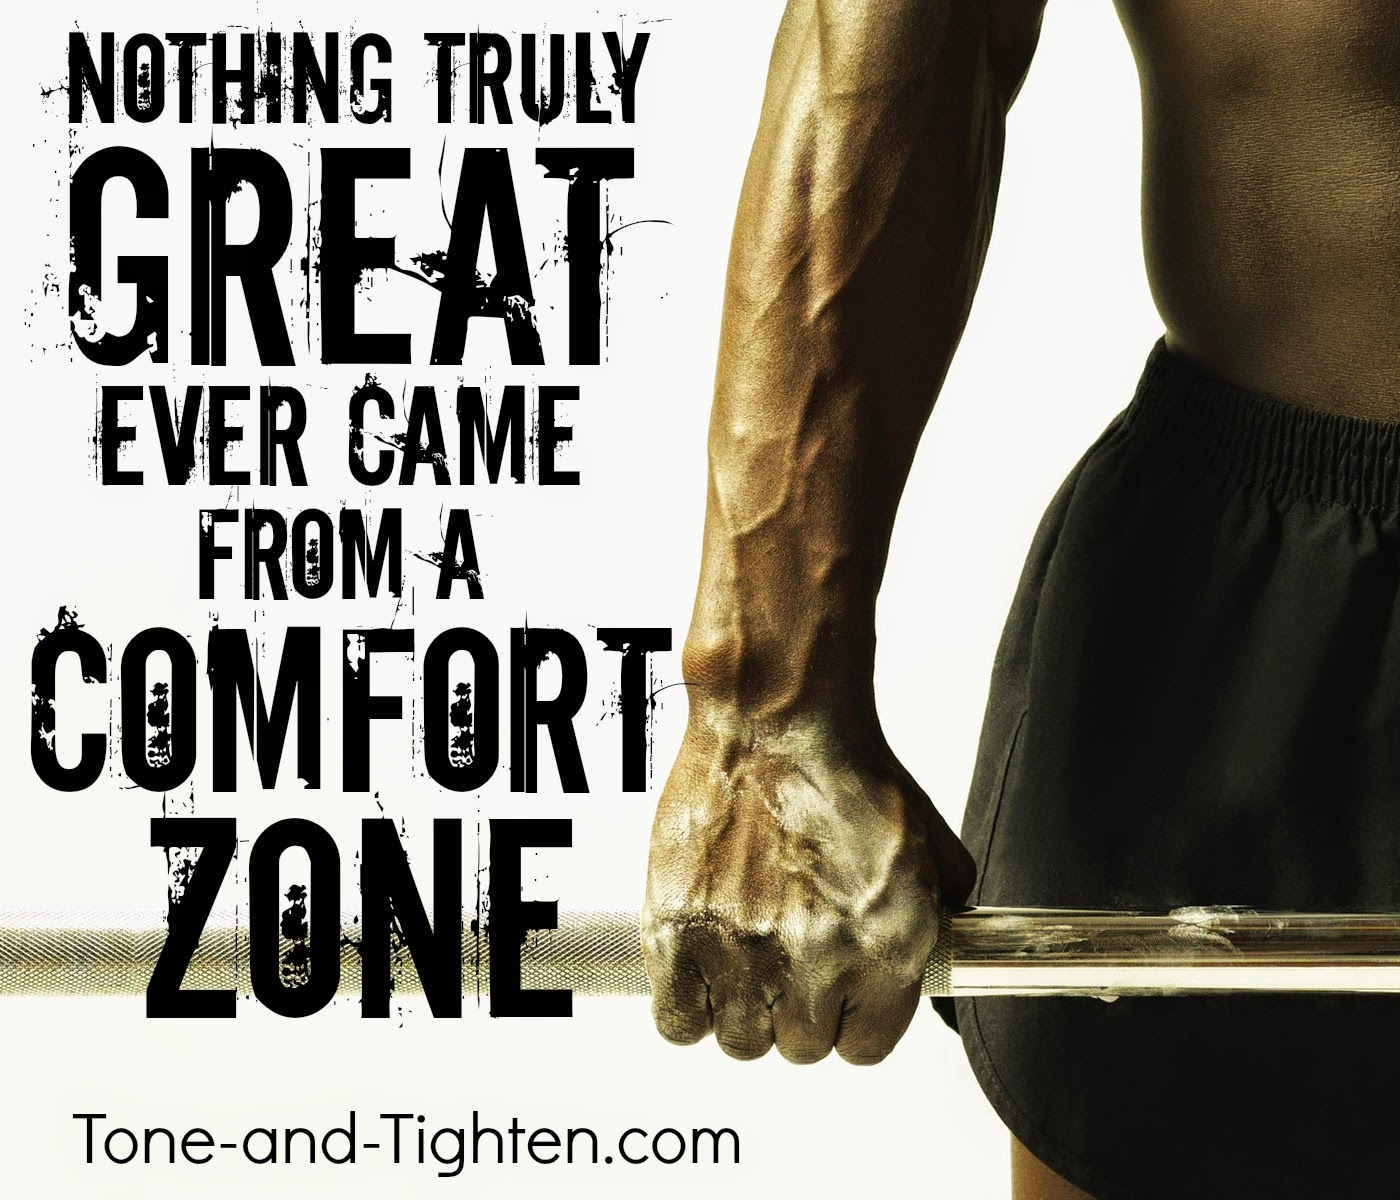 44 Inspirational Workout Quotes With Pictures To Getting: Keep Calm And Lift On Poster